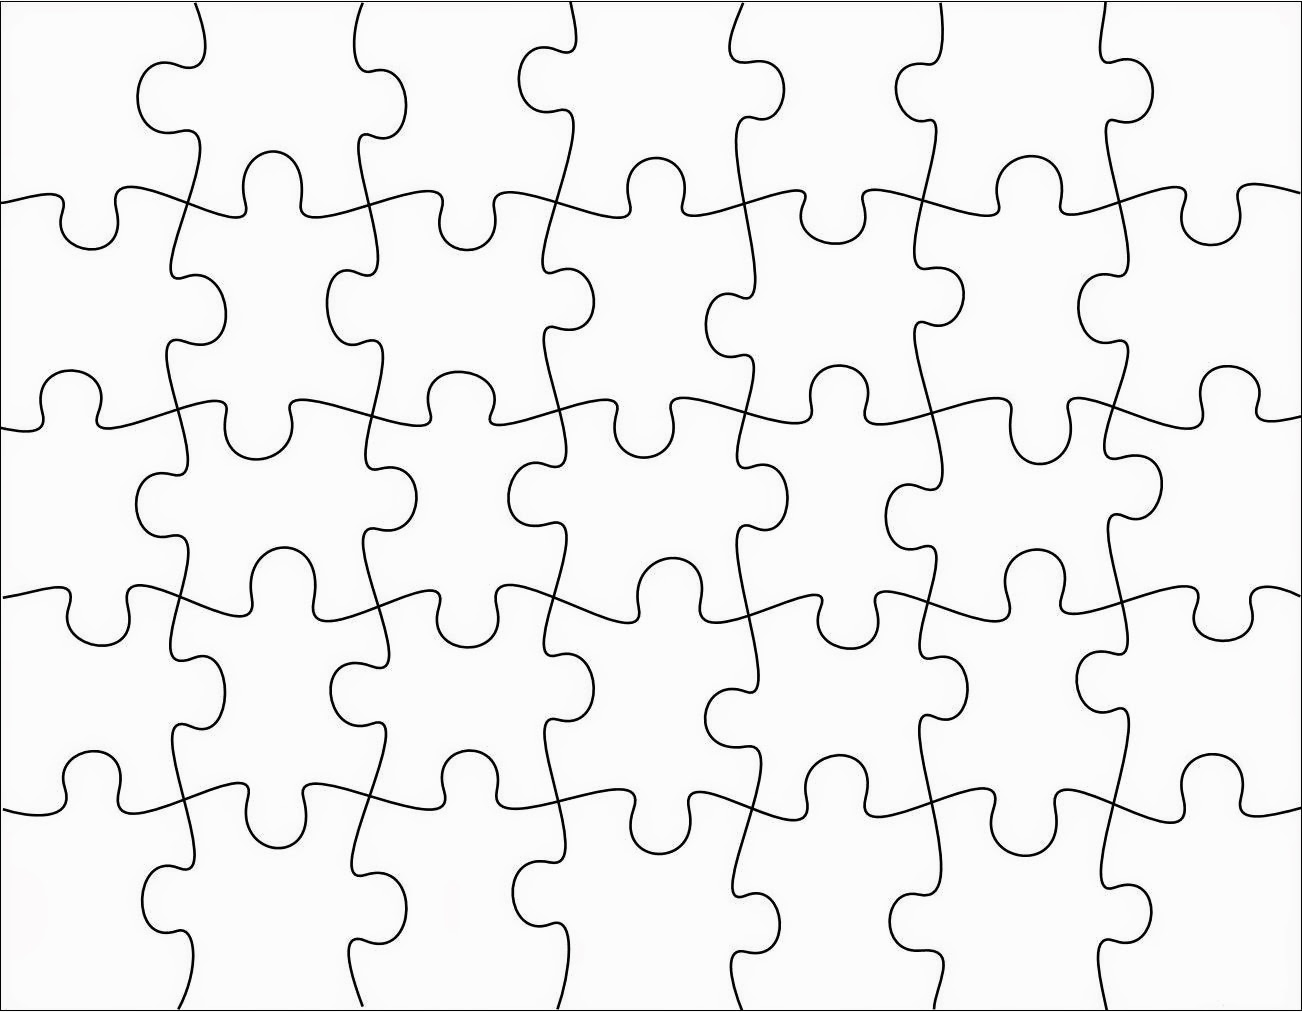 Jigsaw Puzzles To Print Out Submited Images